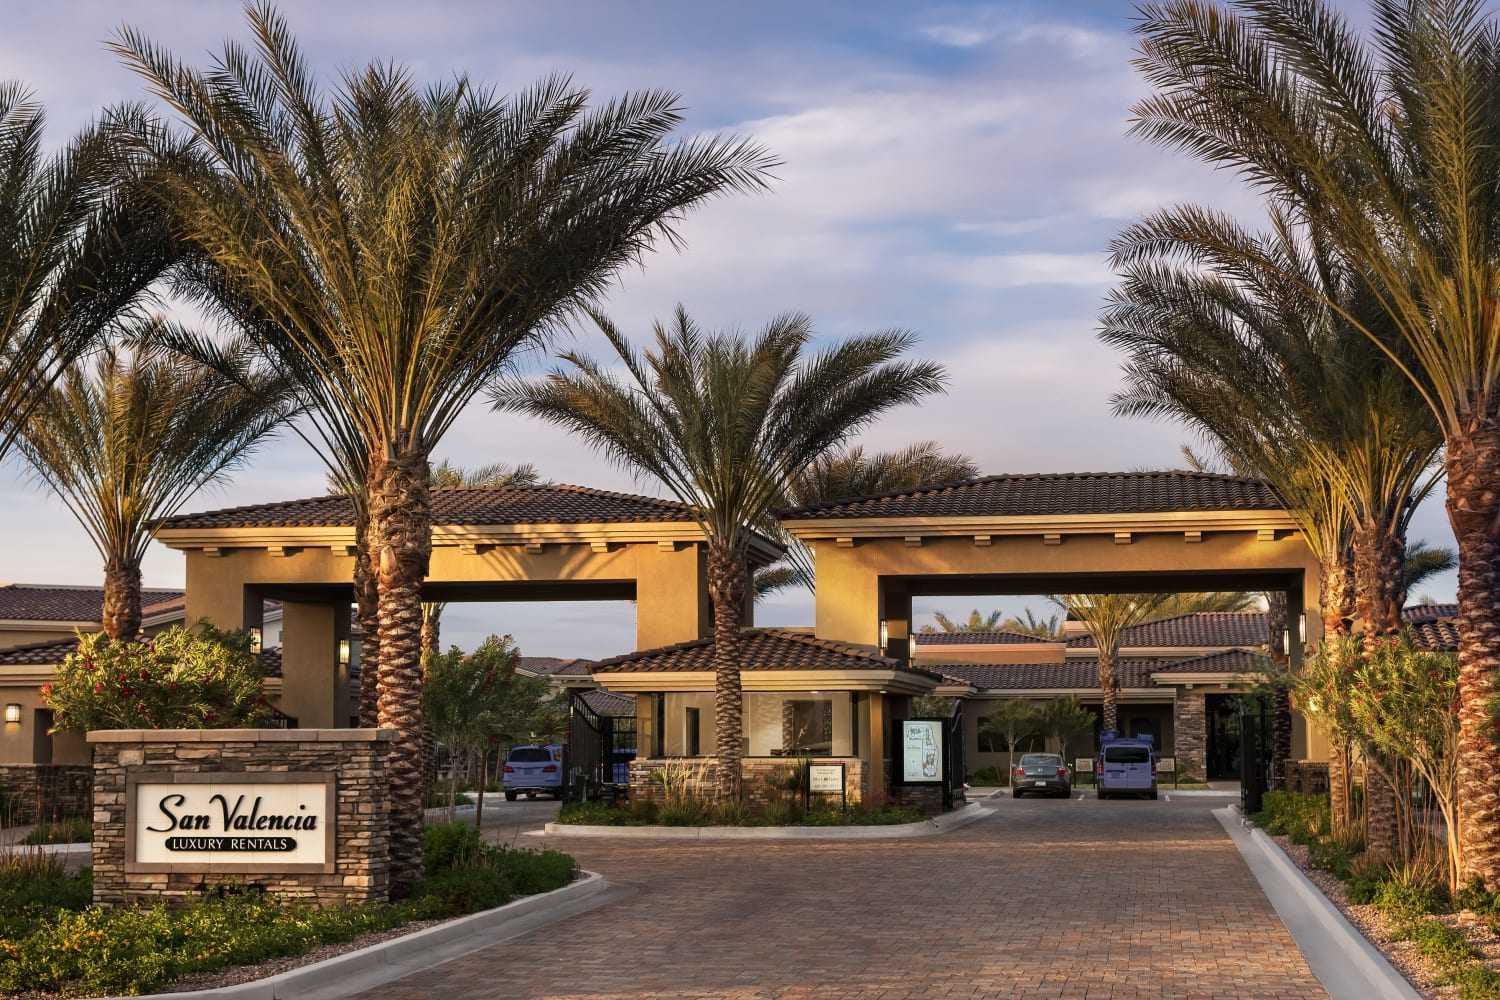 Porte Cochere San Valencia in Chandler, Arizona